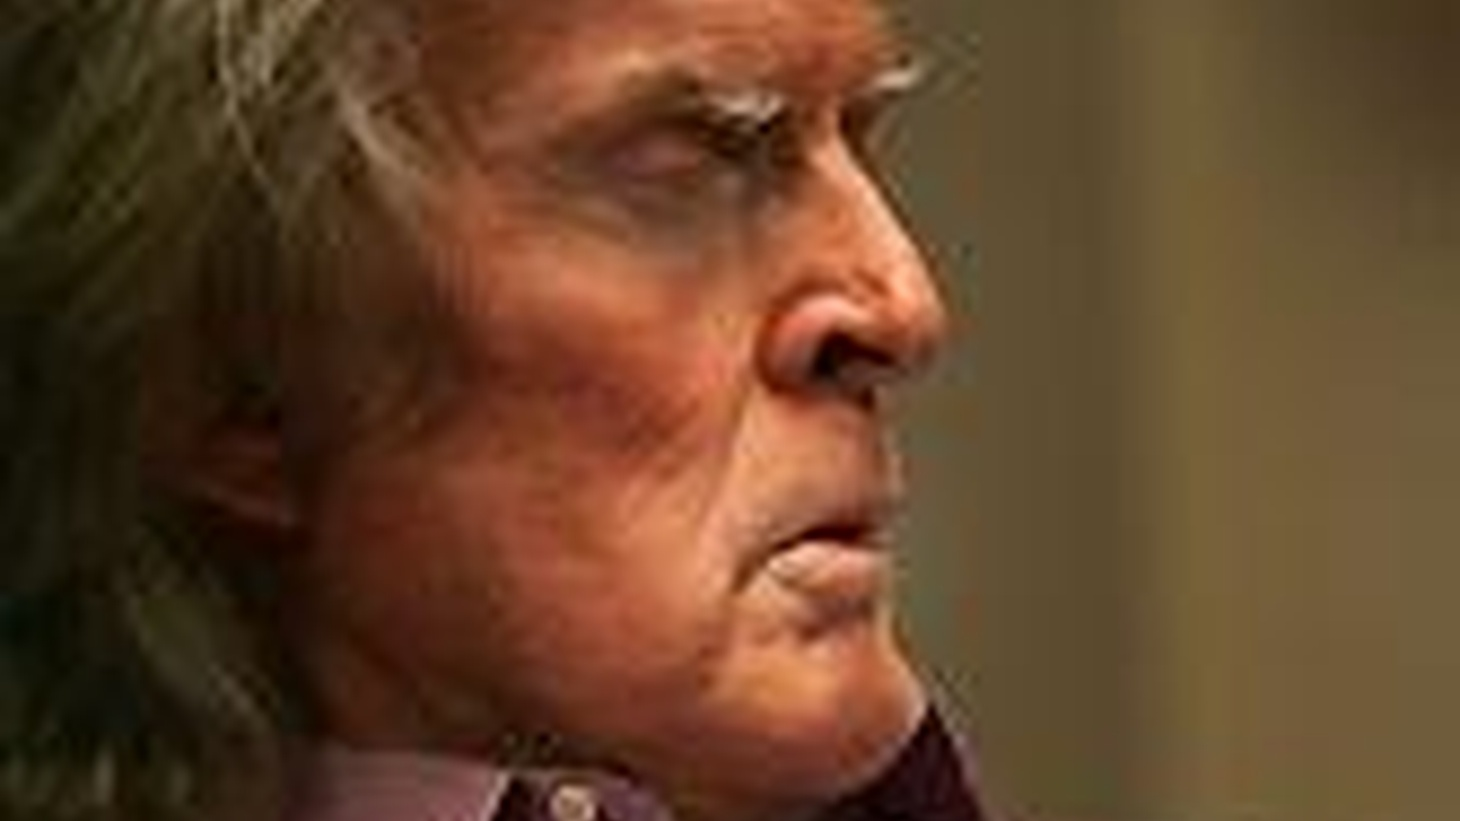 """Honestly, I'm shocked. CBS has today fired their cash cow Don Imus, following NBC's decision yesterday to cut Imus loose in the wake of his hateful reference to the women's basketball players of Rutgers University as """"nappy-headed hos."""" For those of you comparing the Imus case to Anna Nicole Smith the last few days, kvetching that you've been fed up with the ongoing tabloid-style round-the-clock chatter, make no mistake. This is no tabloid gossip..."""